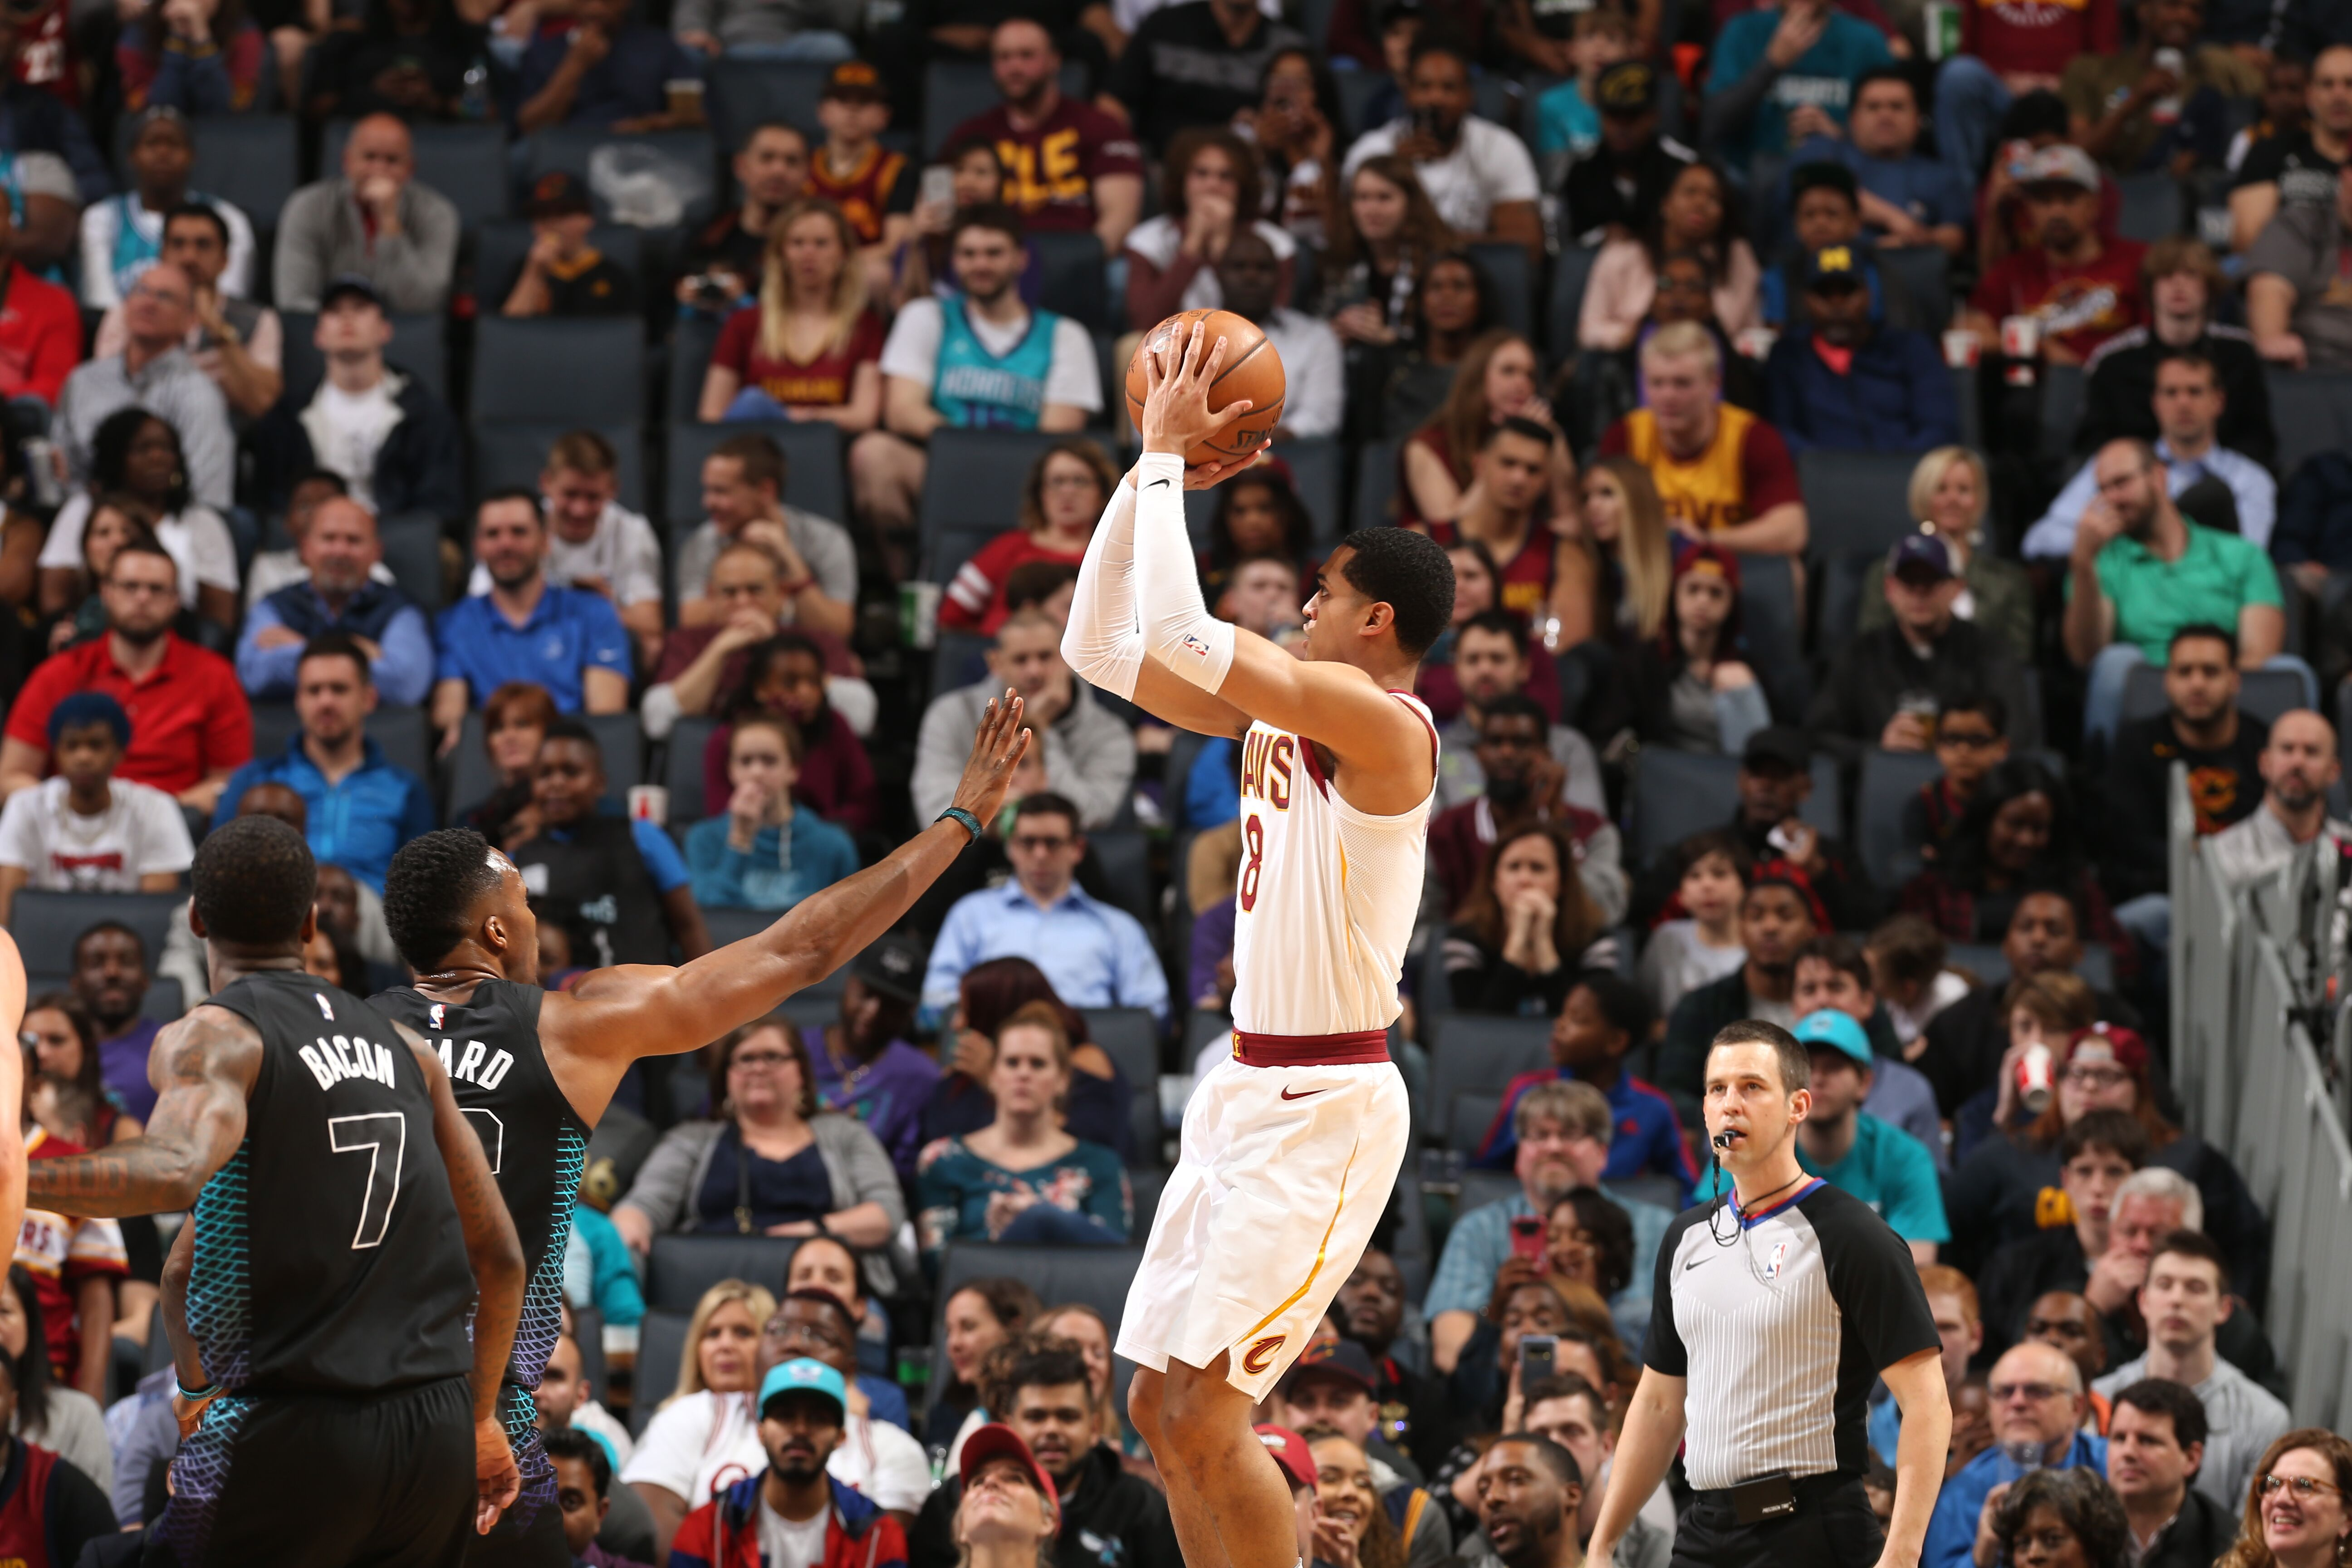 Cleveland Cavaliers: Jordan Clarkson needs to show he can play off-ball